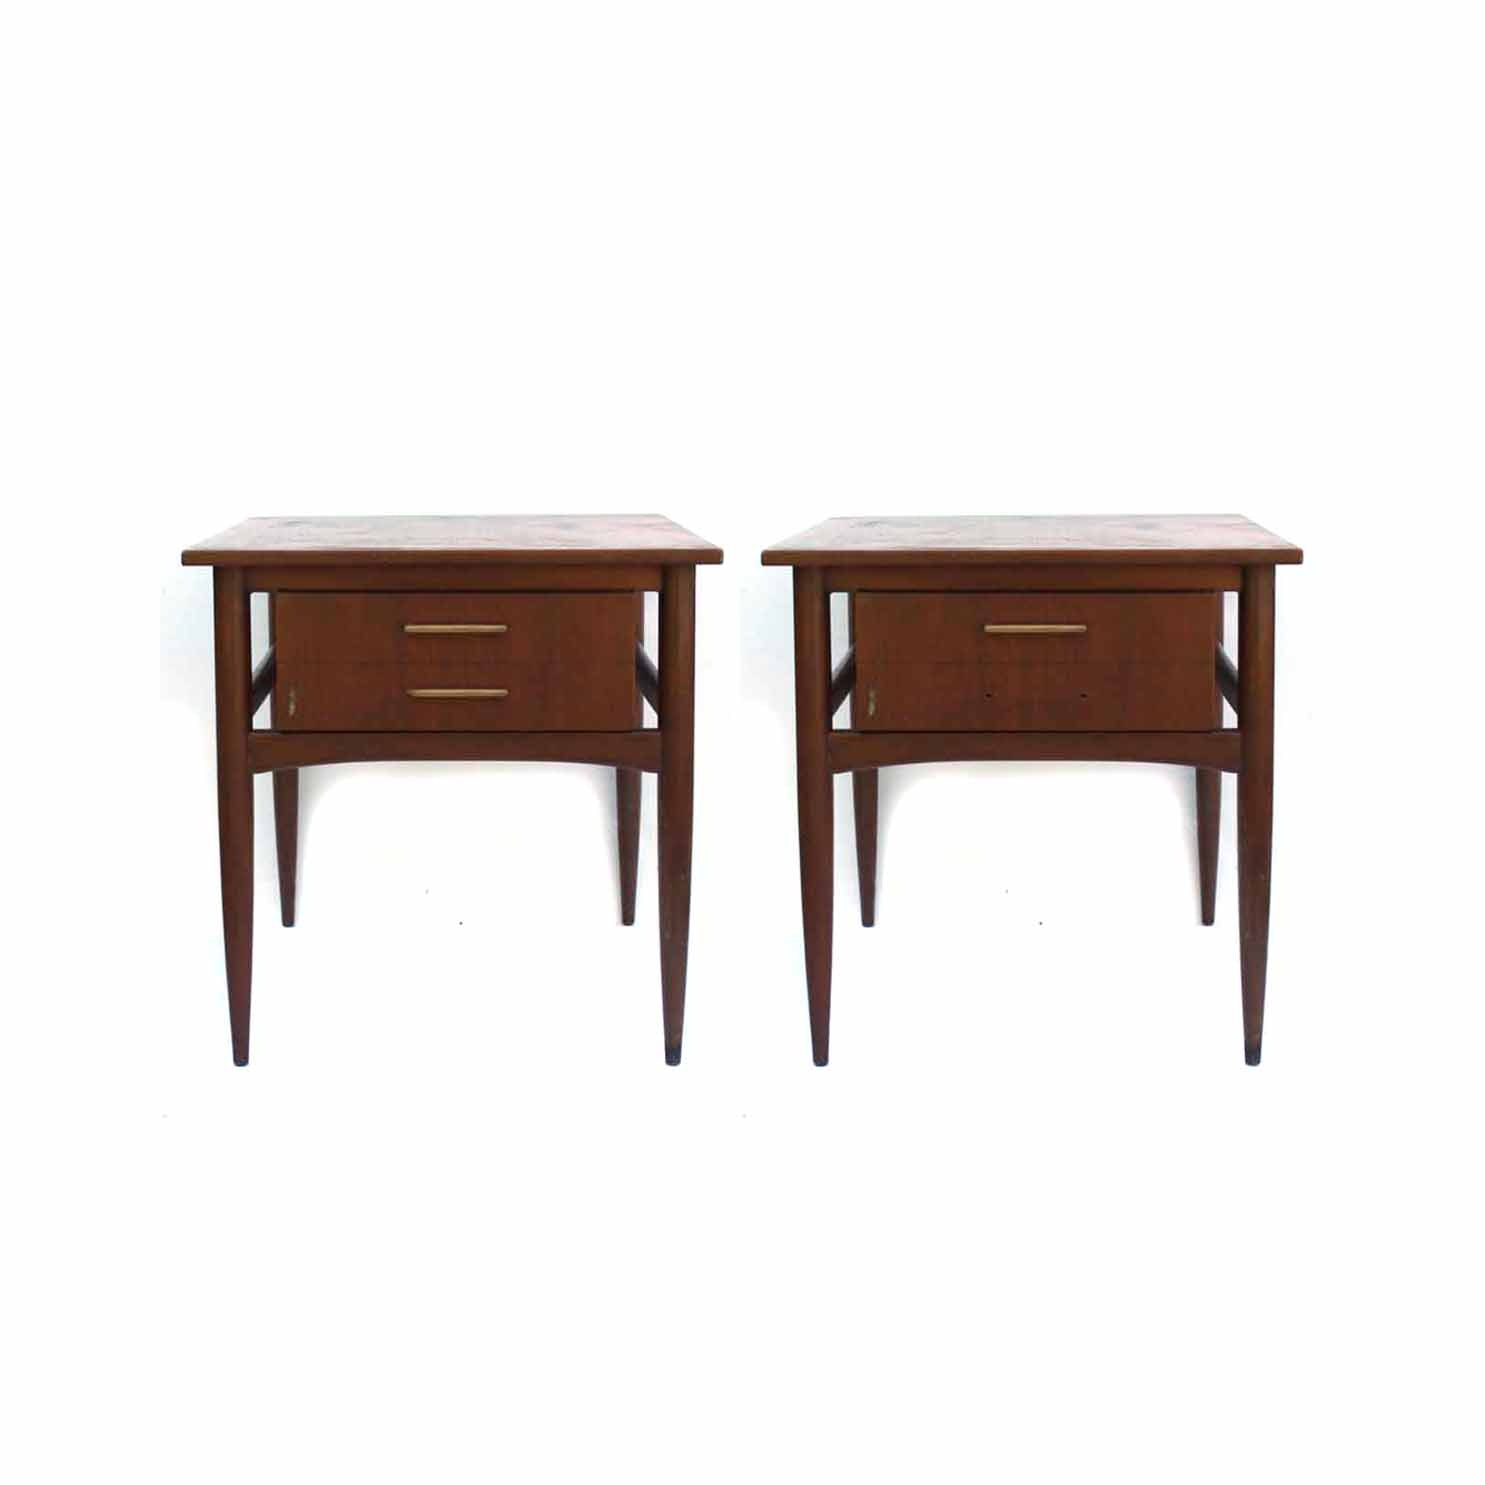 Two Mid Century Modern End Tables by Hekman